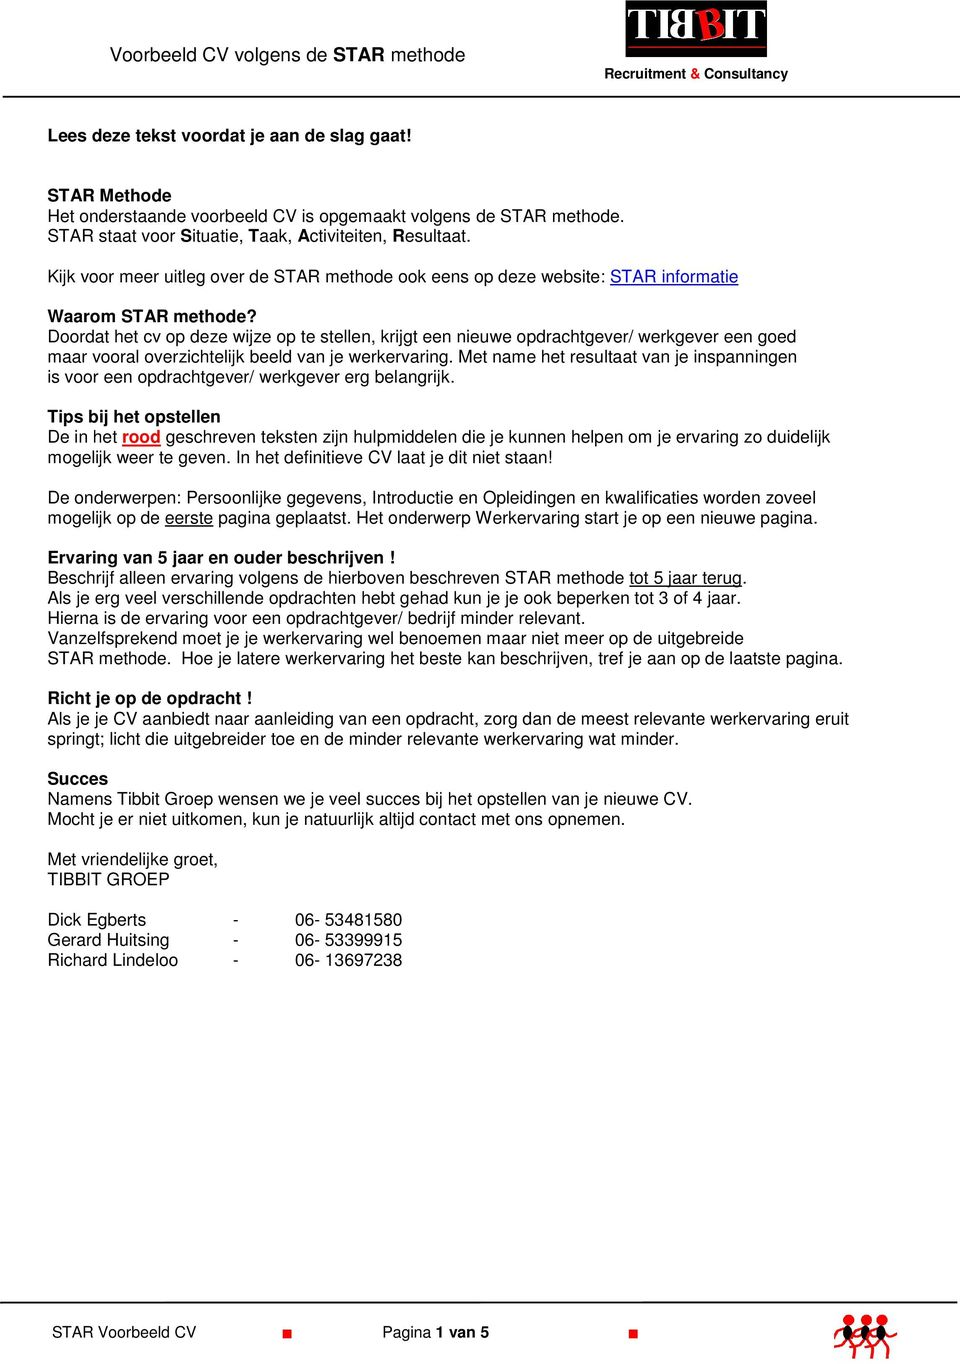 voorbeeld sollicitatiebrief salarisadministrateur Voorbeeld CV volgens de STAR methode Recruitment & Consultancy   PDF voorbeeld sollicitatiebrief salarisadministrateur